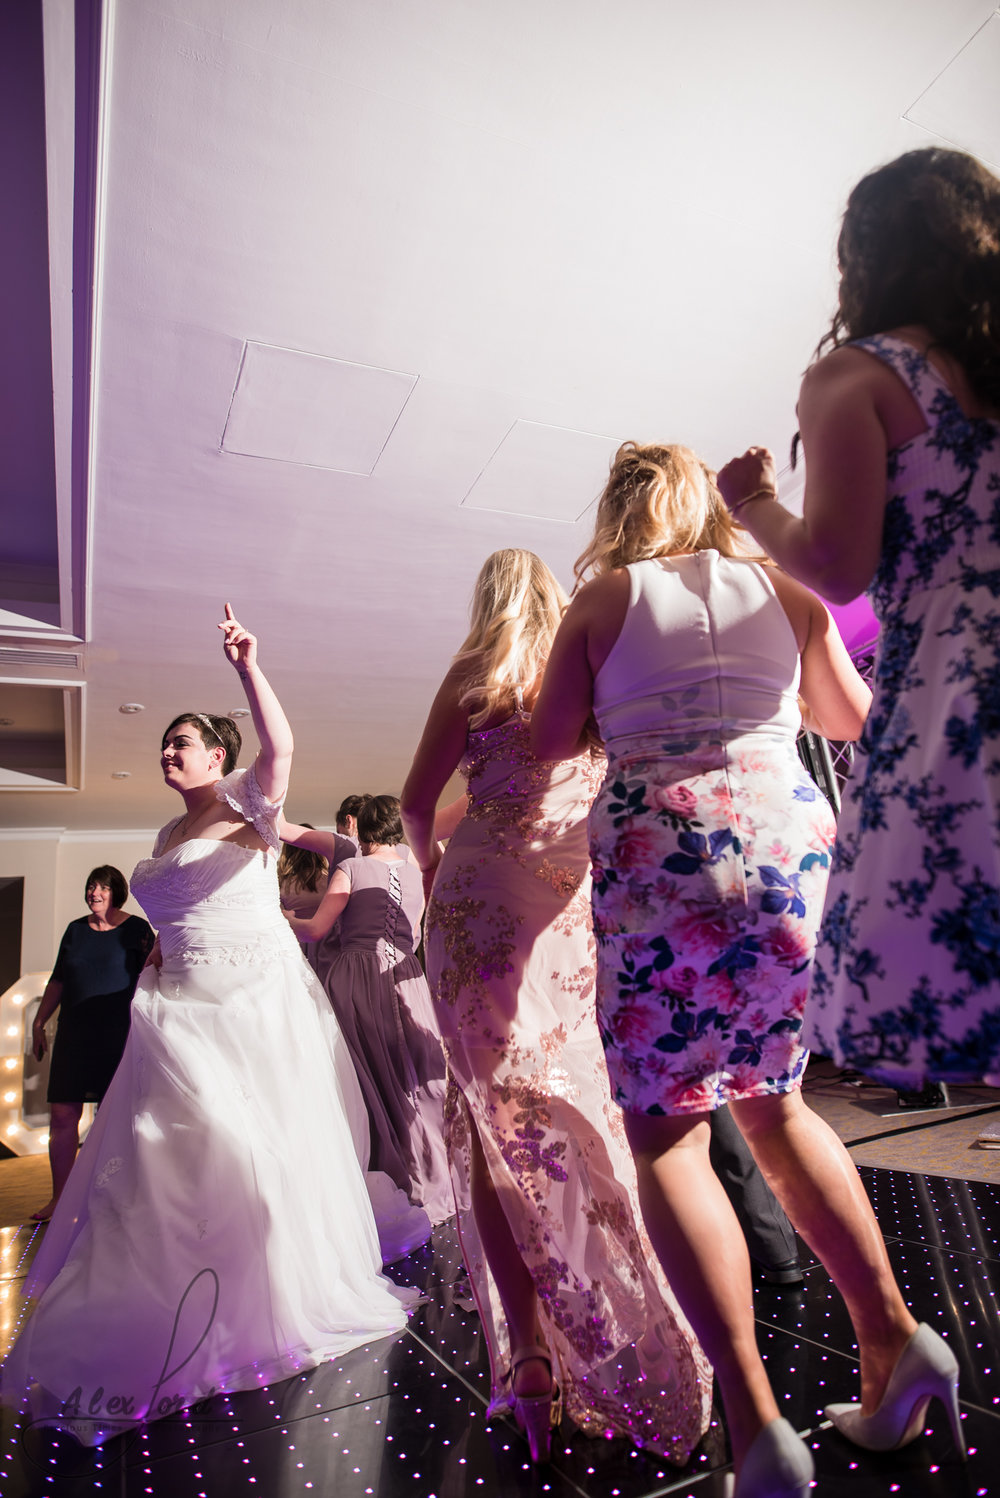 the bride leads other wedding guests as they dance around the dance floor